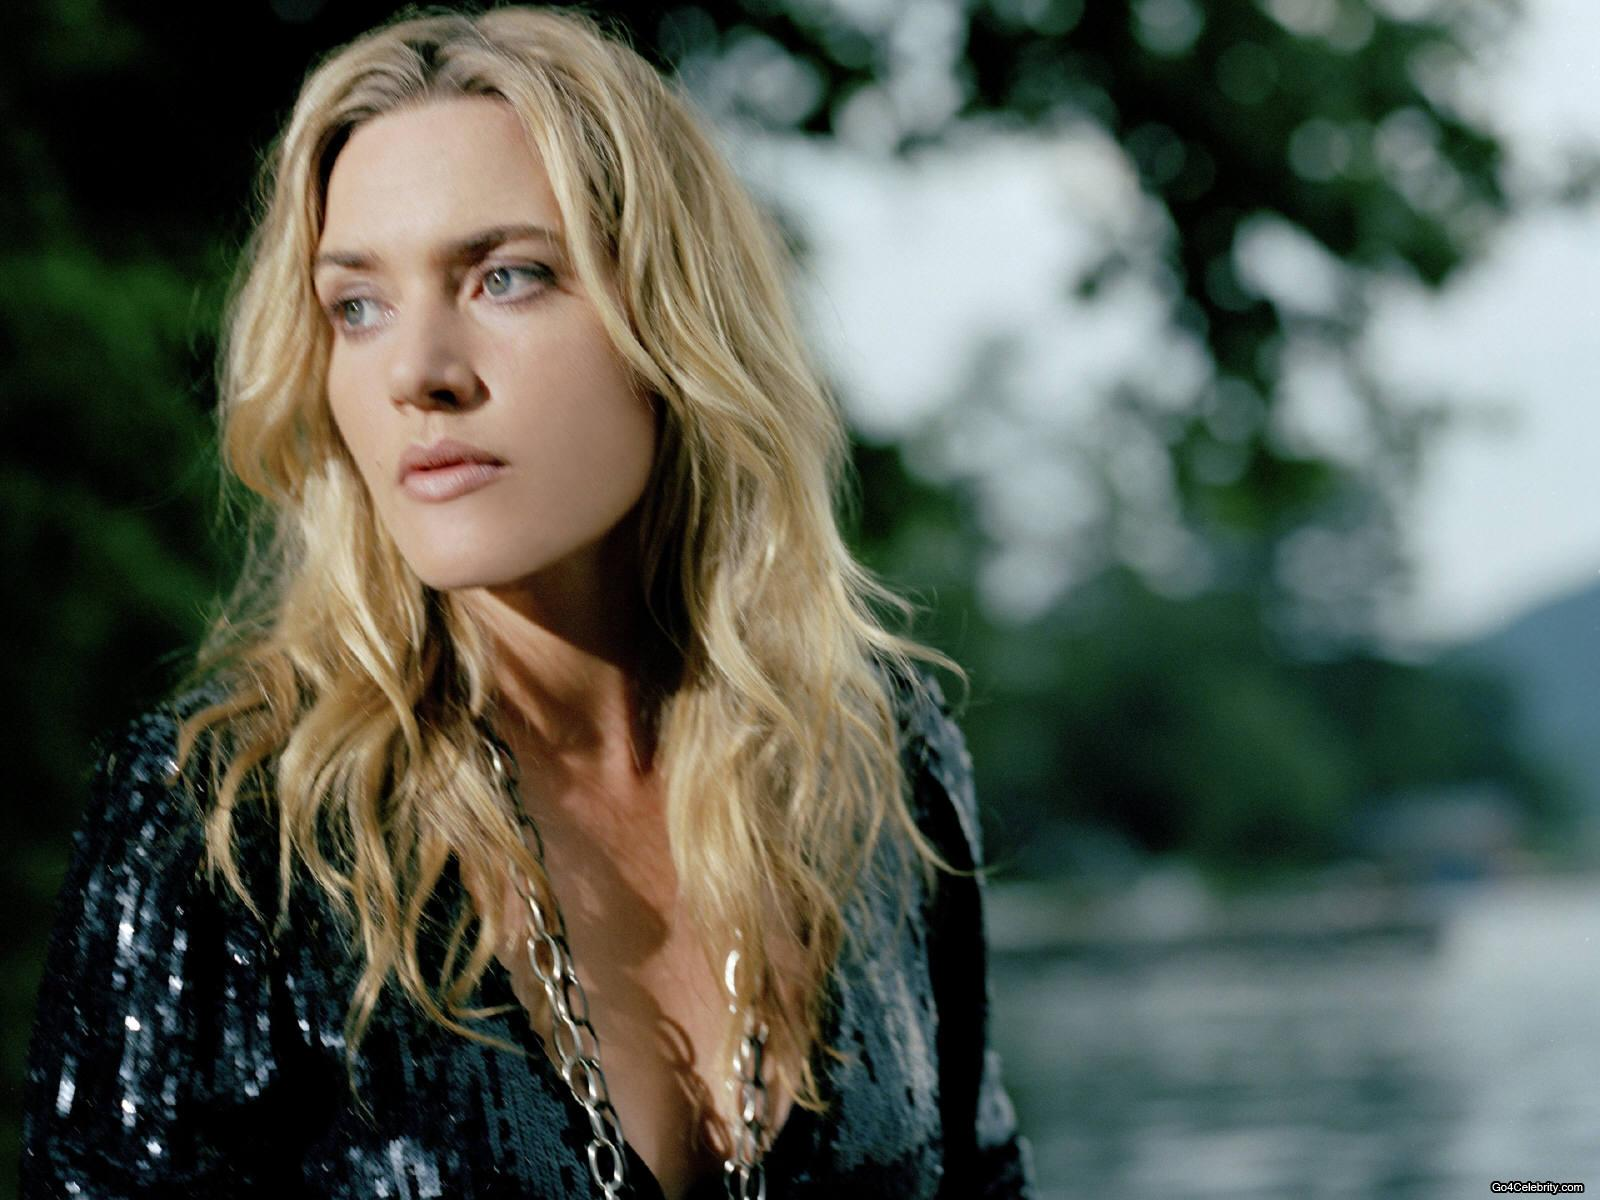 pic new posts: Hd Wallpaper Kate Winslet